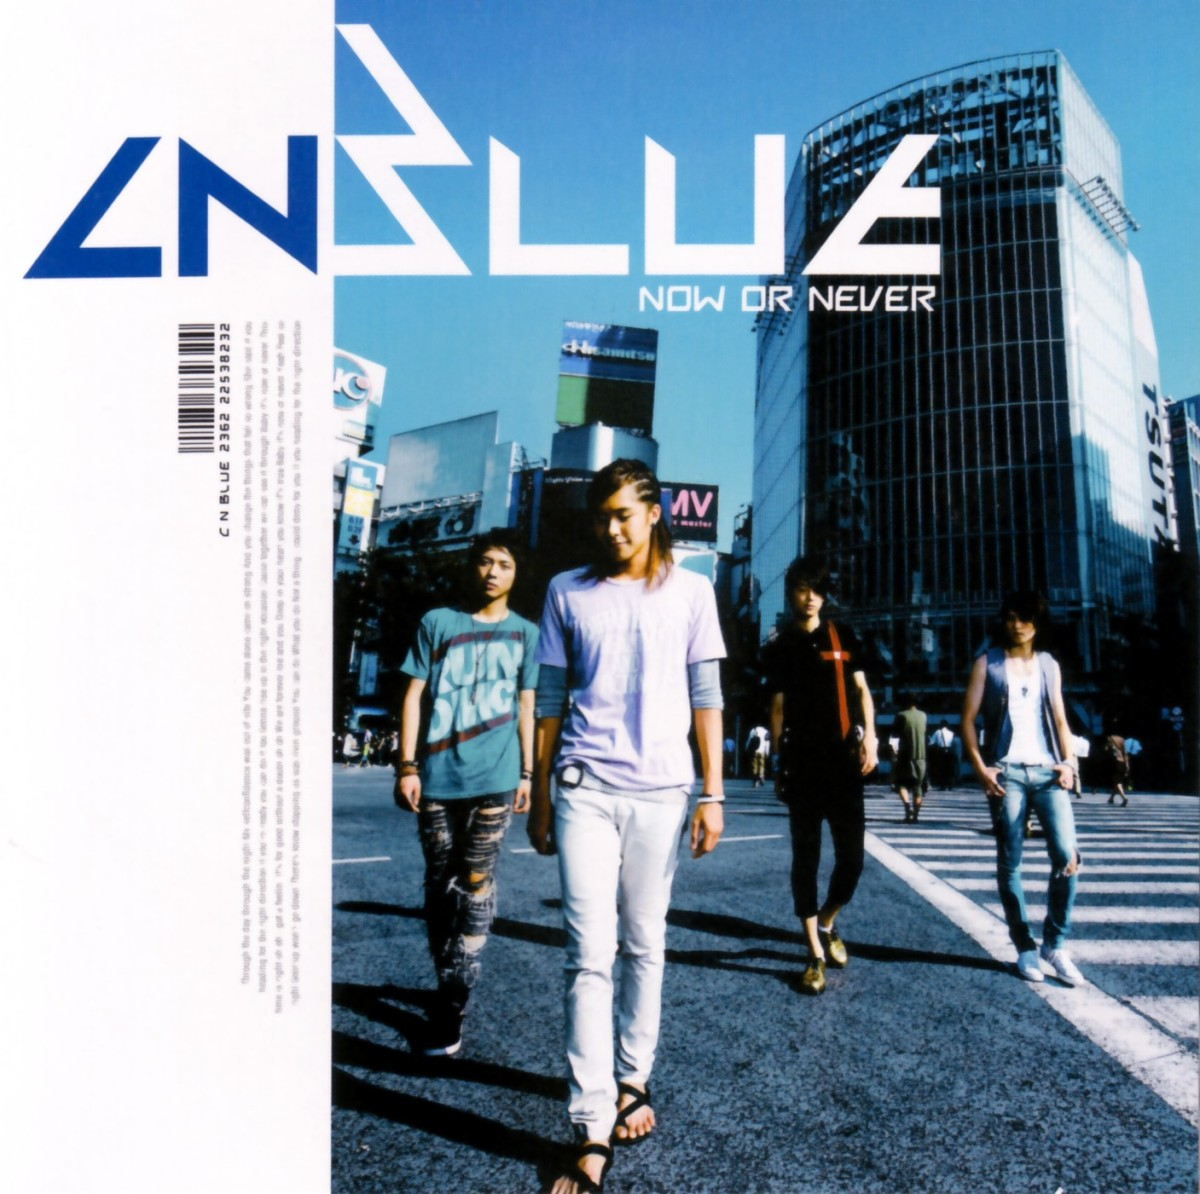 [Album] CNBLUE ~Now or Never~ 1st Mini Album [MP3|FLAC]